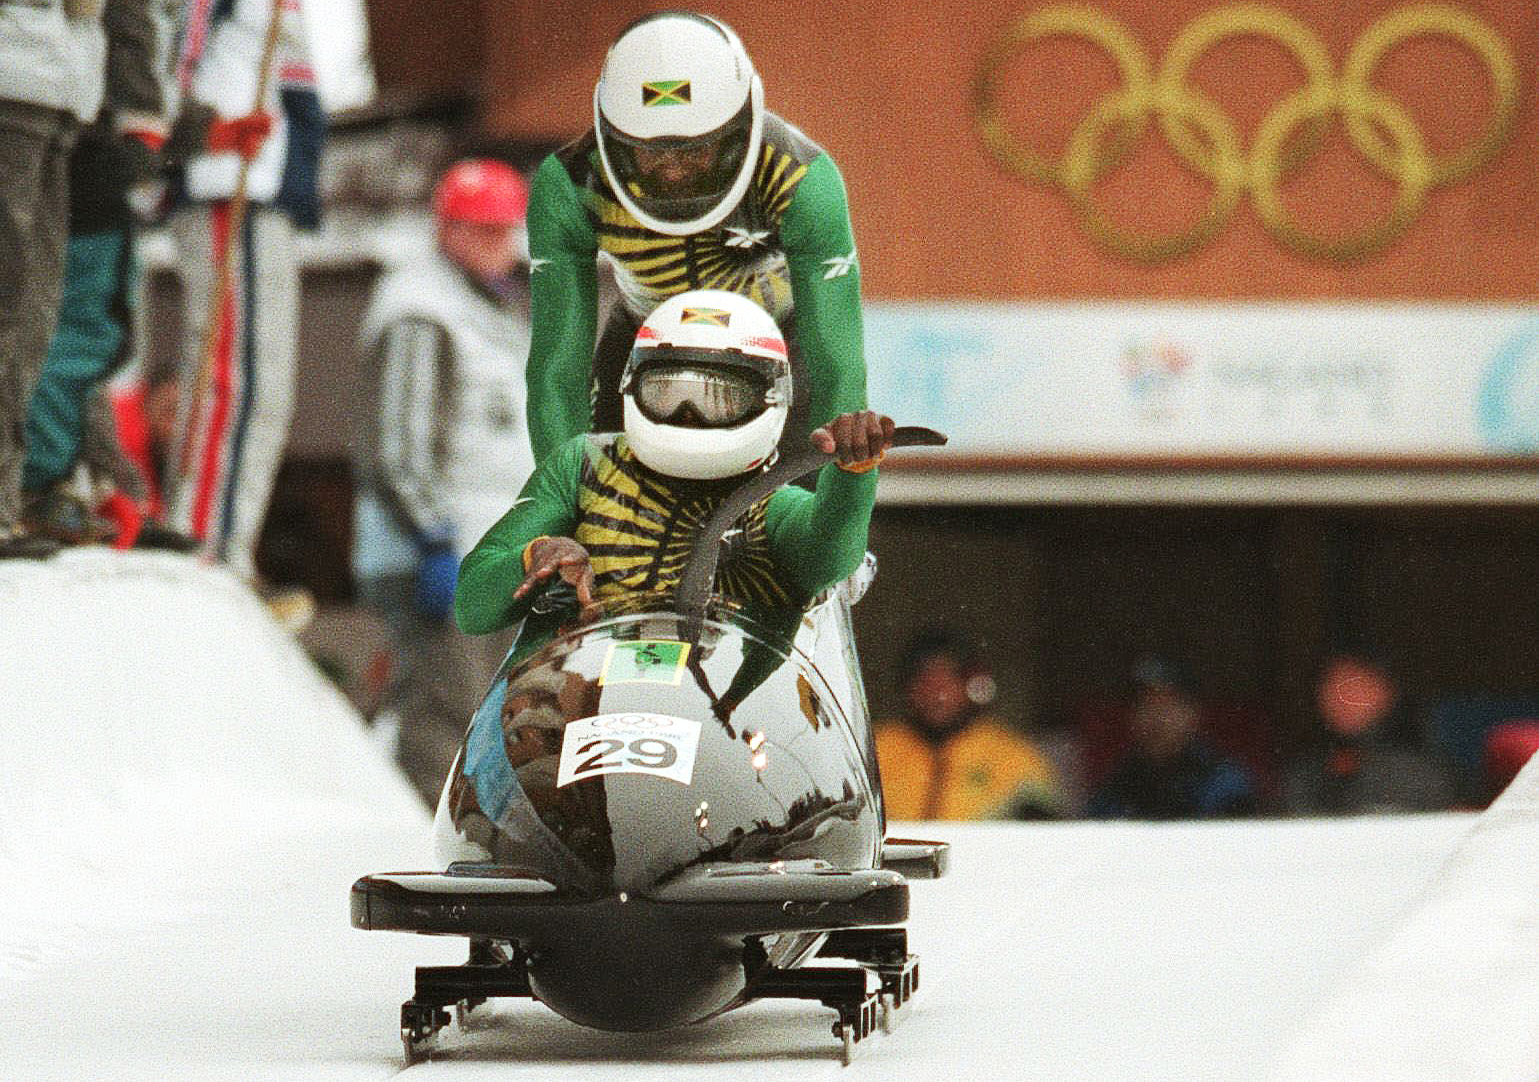 Devon Harris (front) and Michael Morgan (rear), of Jamaica, start their run on the first day of the two-man bobsleigh event at the Spiral near Nagano 14 February. The Jamaicans finished the d in thirtieth position.